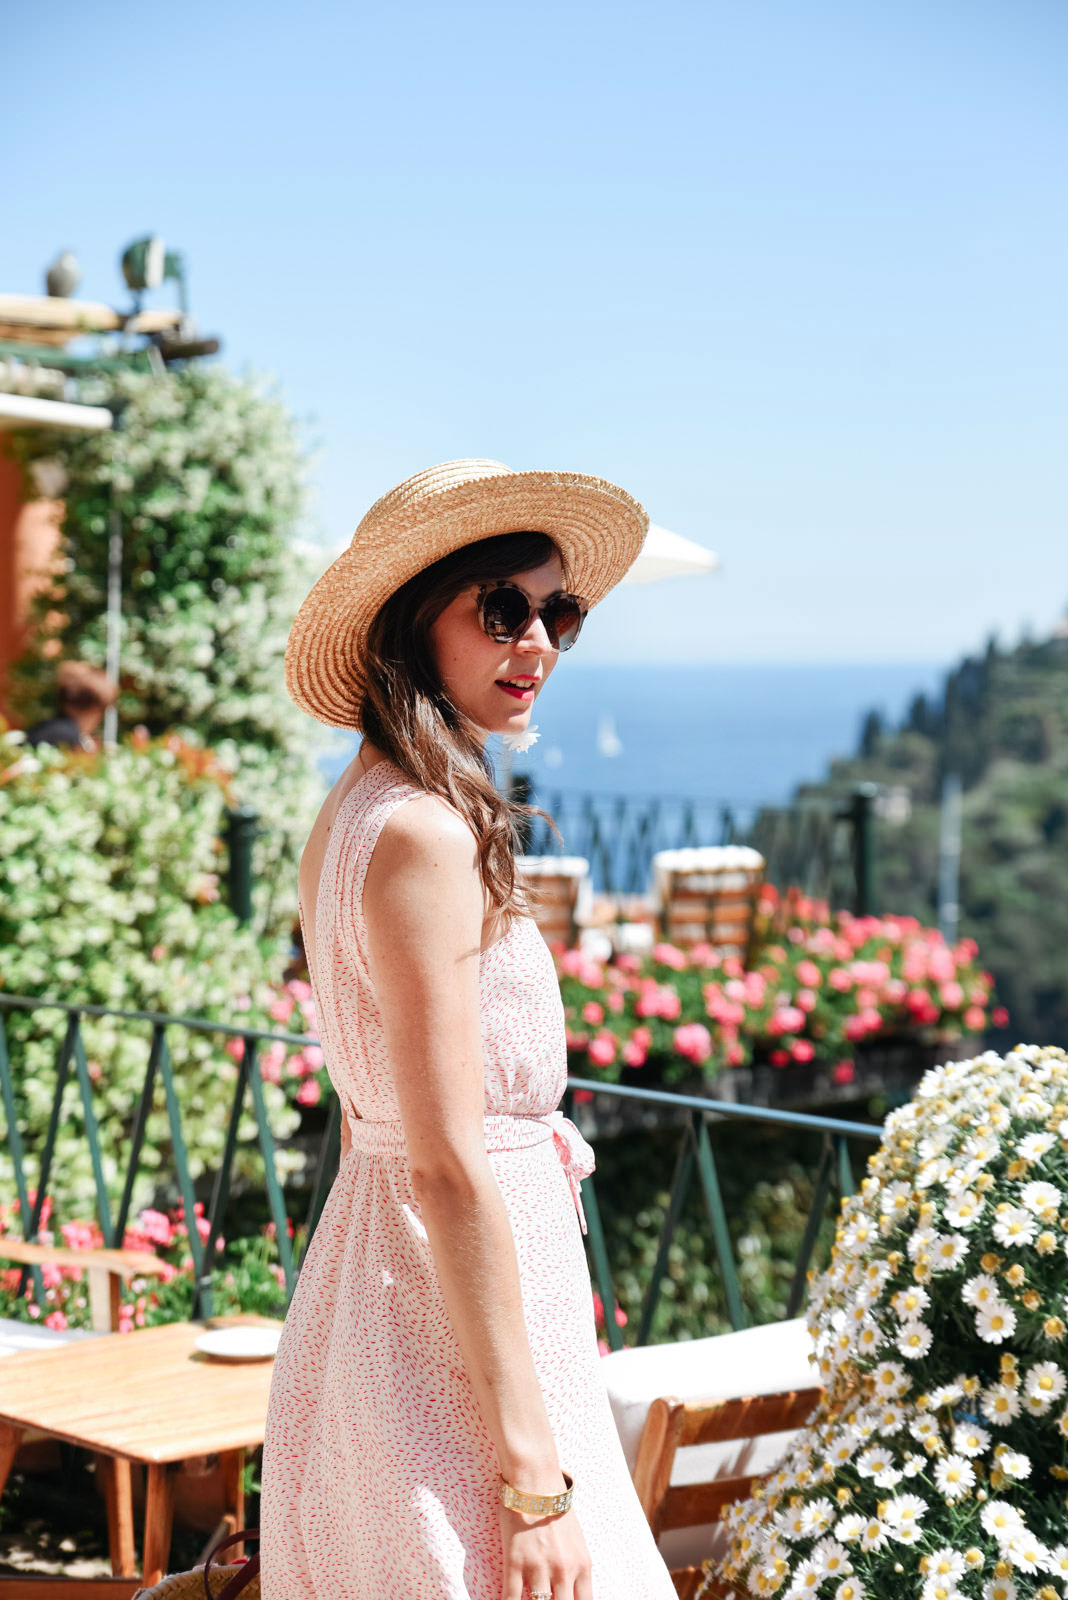 Blog-Mode-And-The-City-Lifestyle-Belmond-Hotel-4 copie